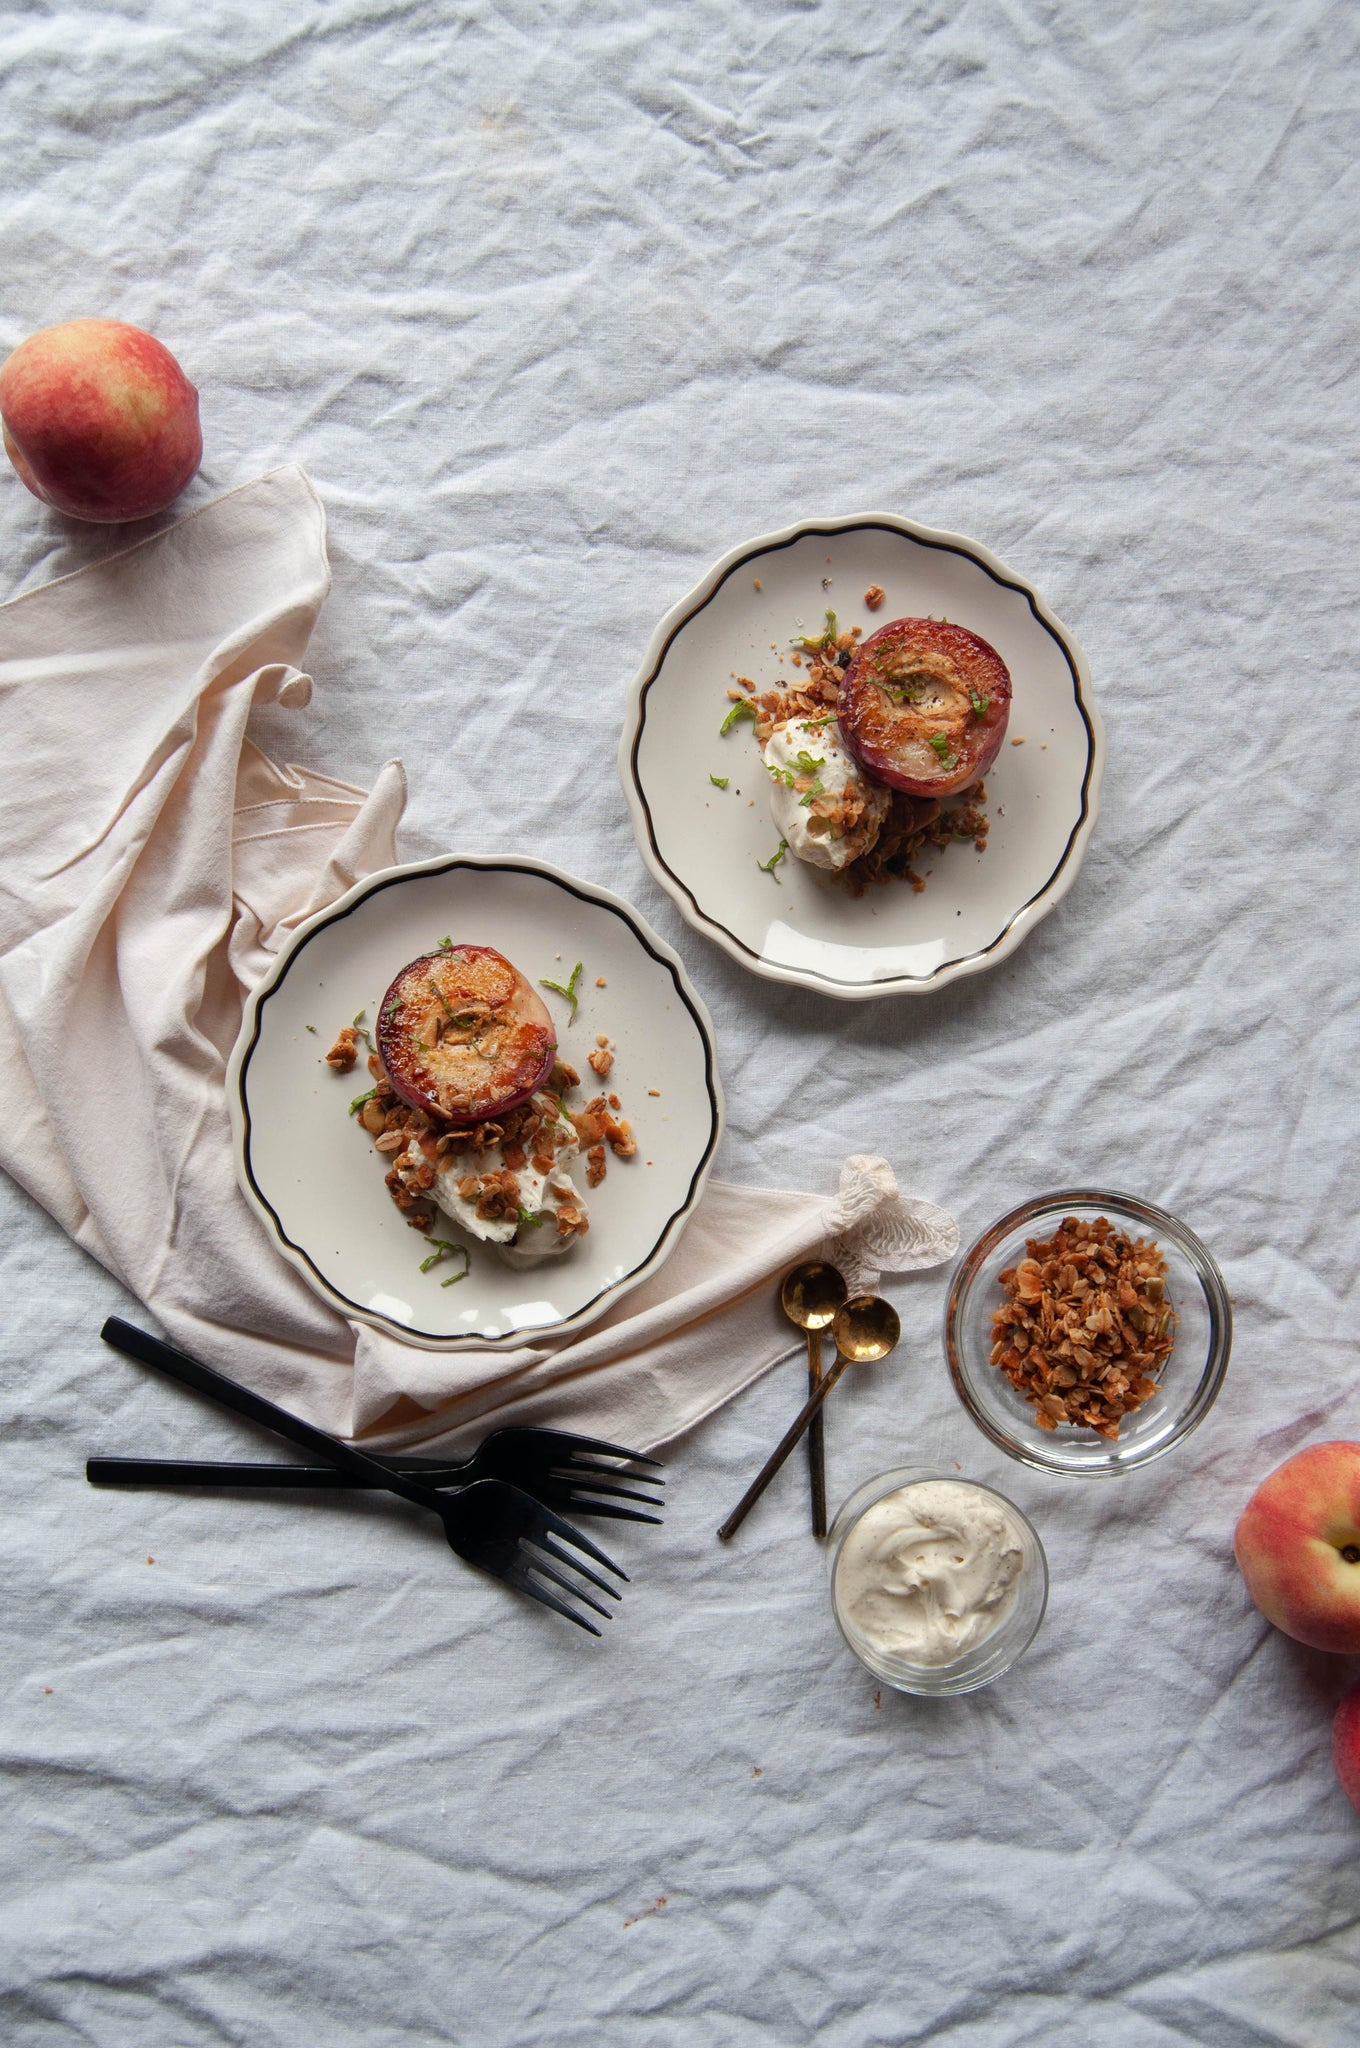 Brown Butter Grilled Peaches with Vanilla Bean Creme Fraiche from Vermont Creamery. Topped with fresh mint, rosemary granola from bumble & butter. It's the perfect dessert for a summer barbeque.